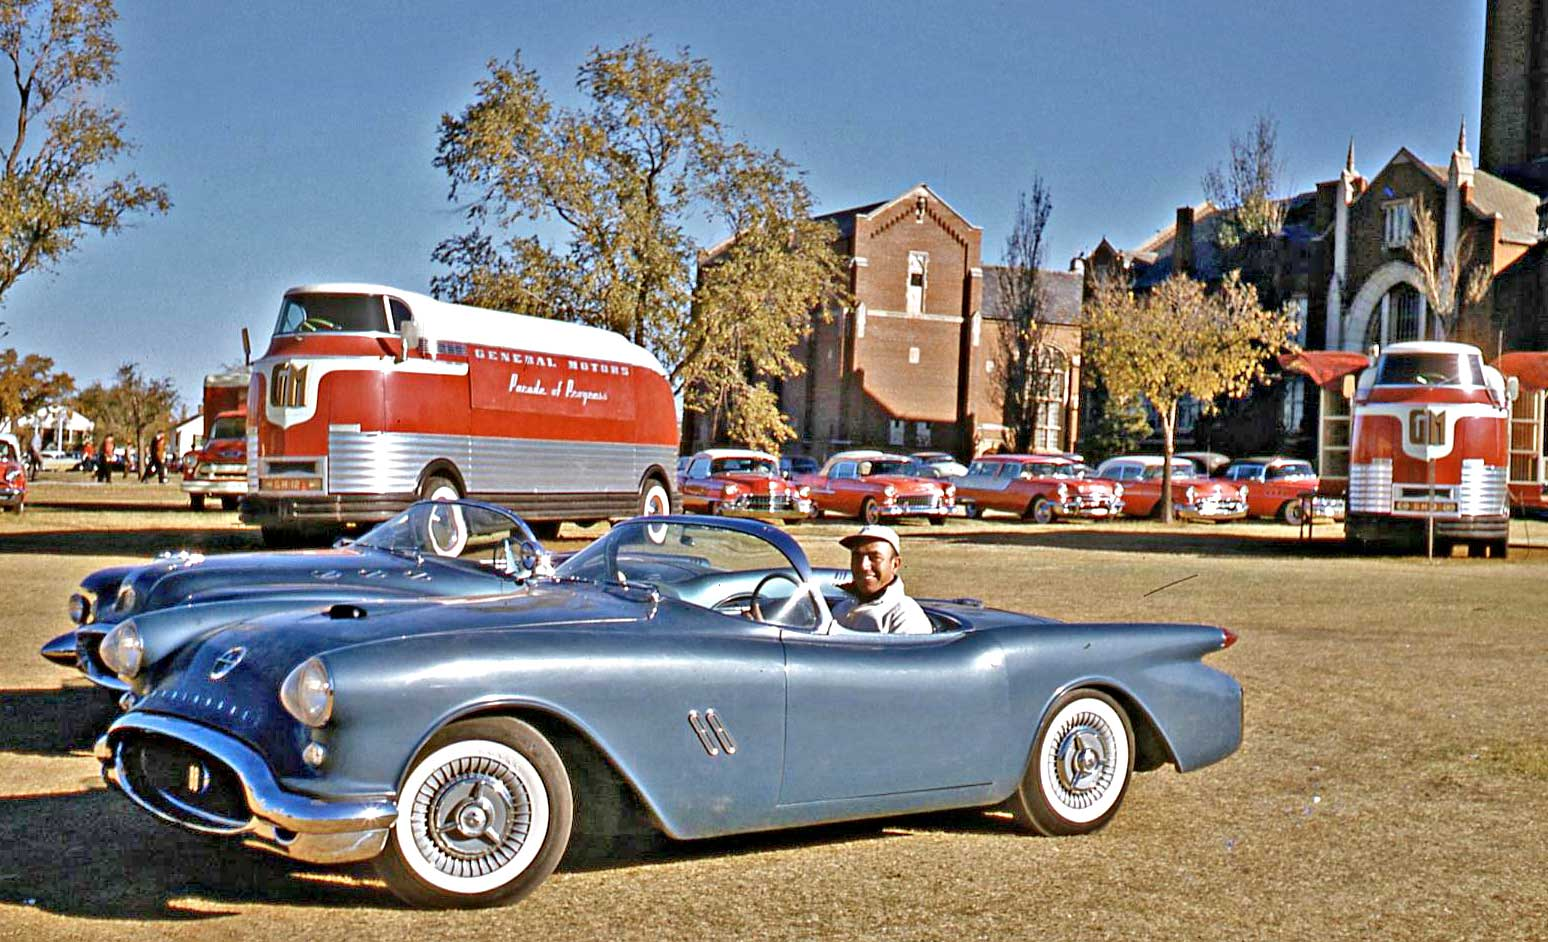 1955 Buick Wildcat Concept Car The Old Motor